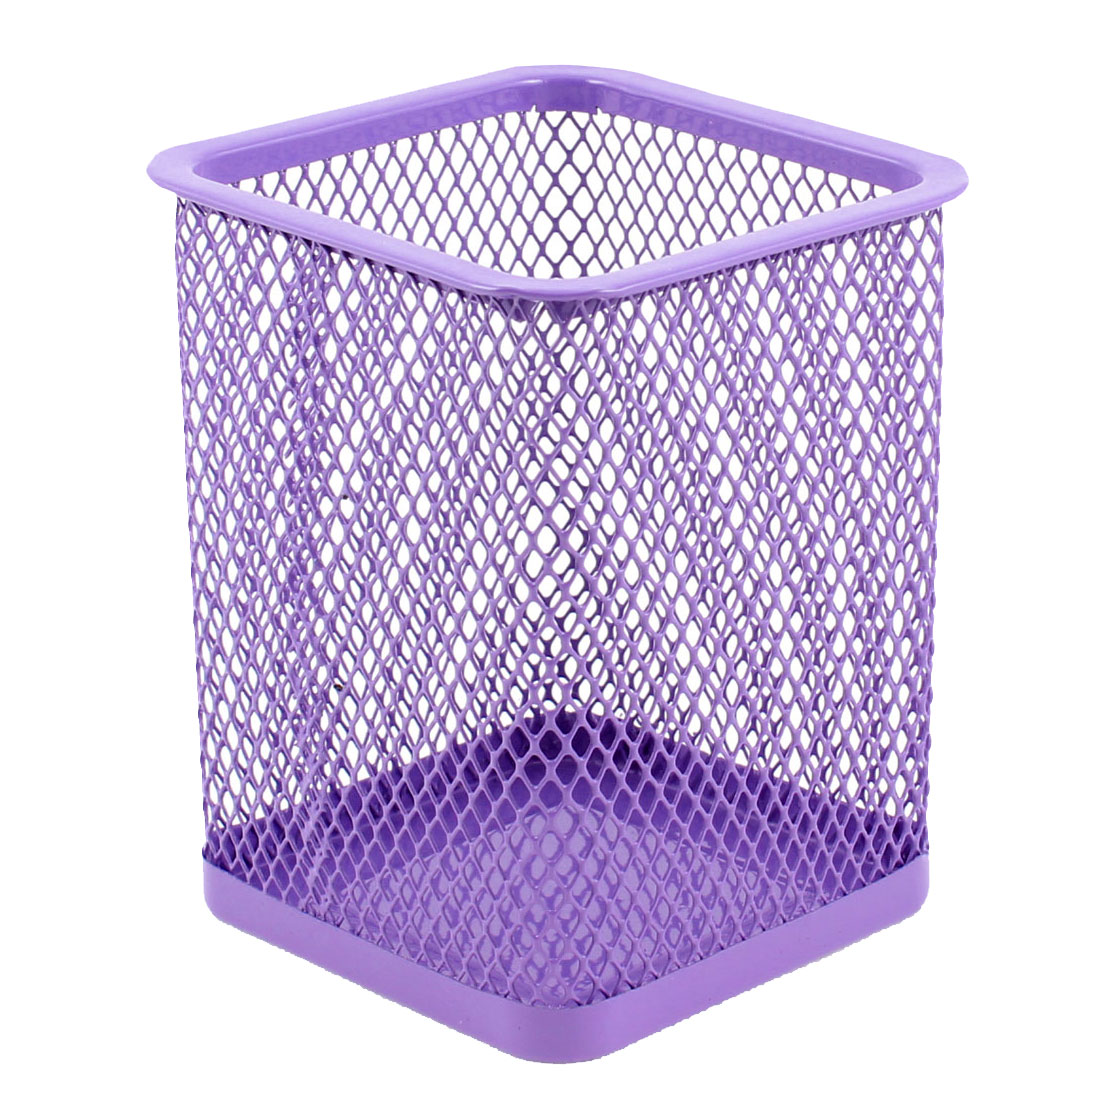 Metallic Mesh Rectangle Shaped Stationery Holder Box Container Purple